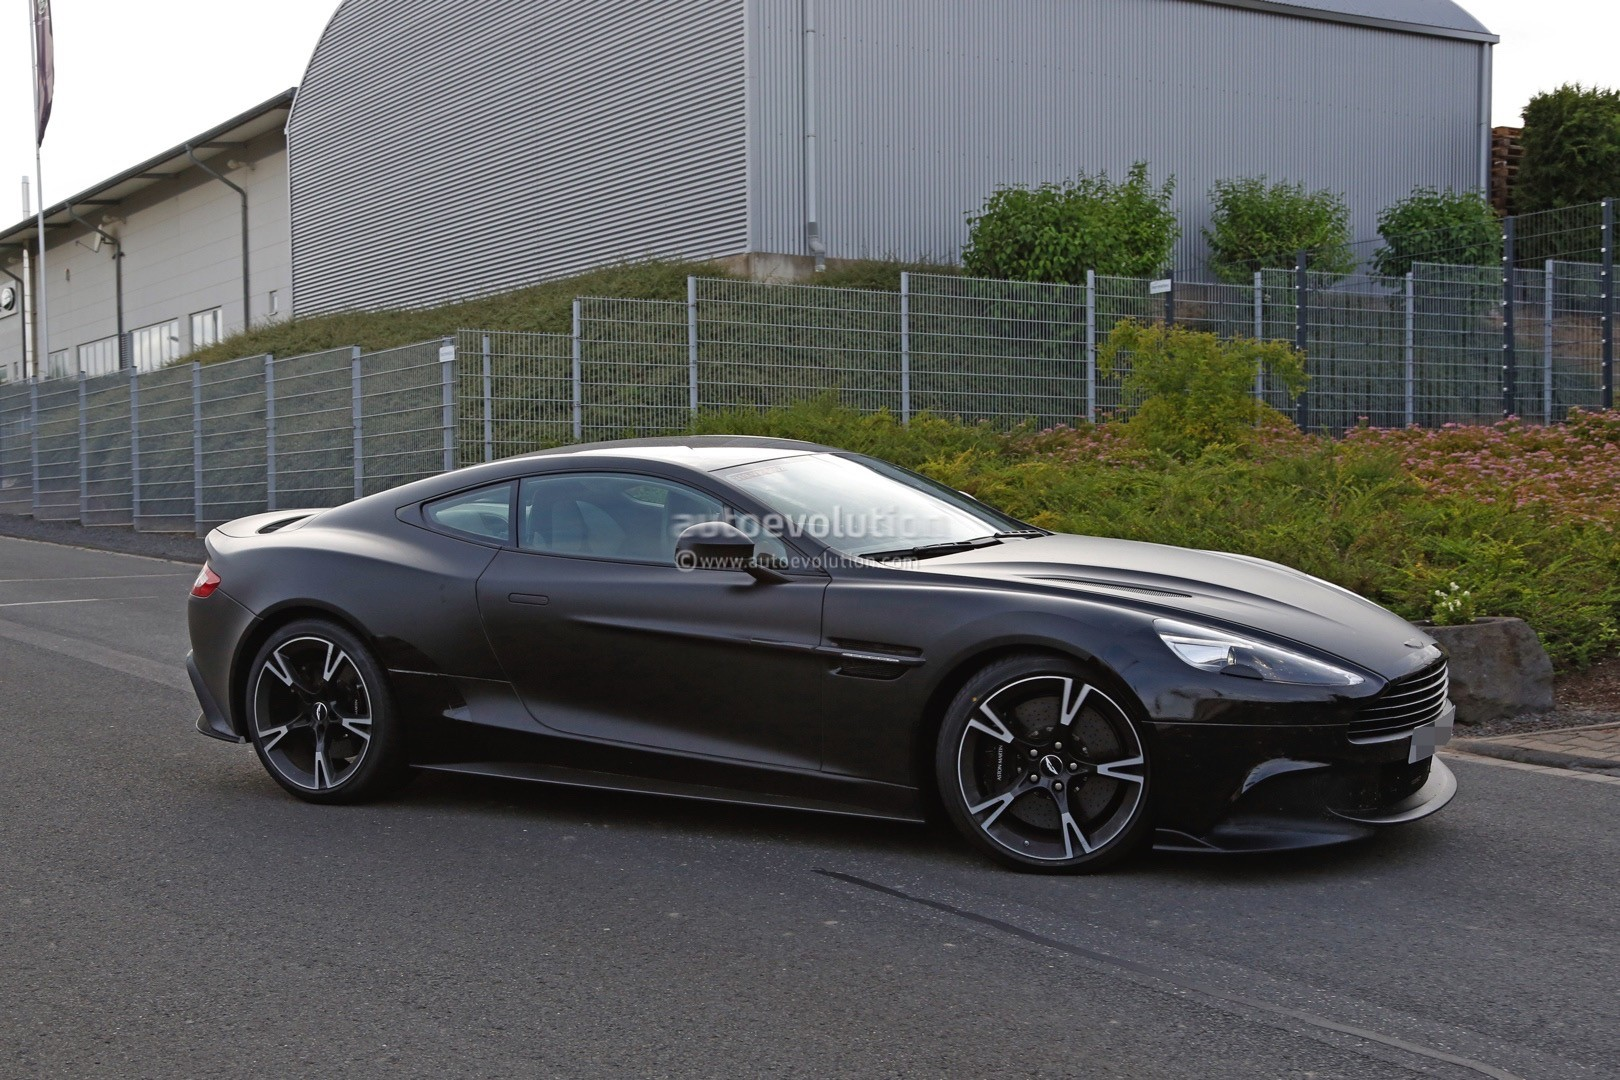 2018 Aston Martin Vanquish S Spied for the First Time ...